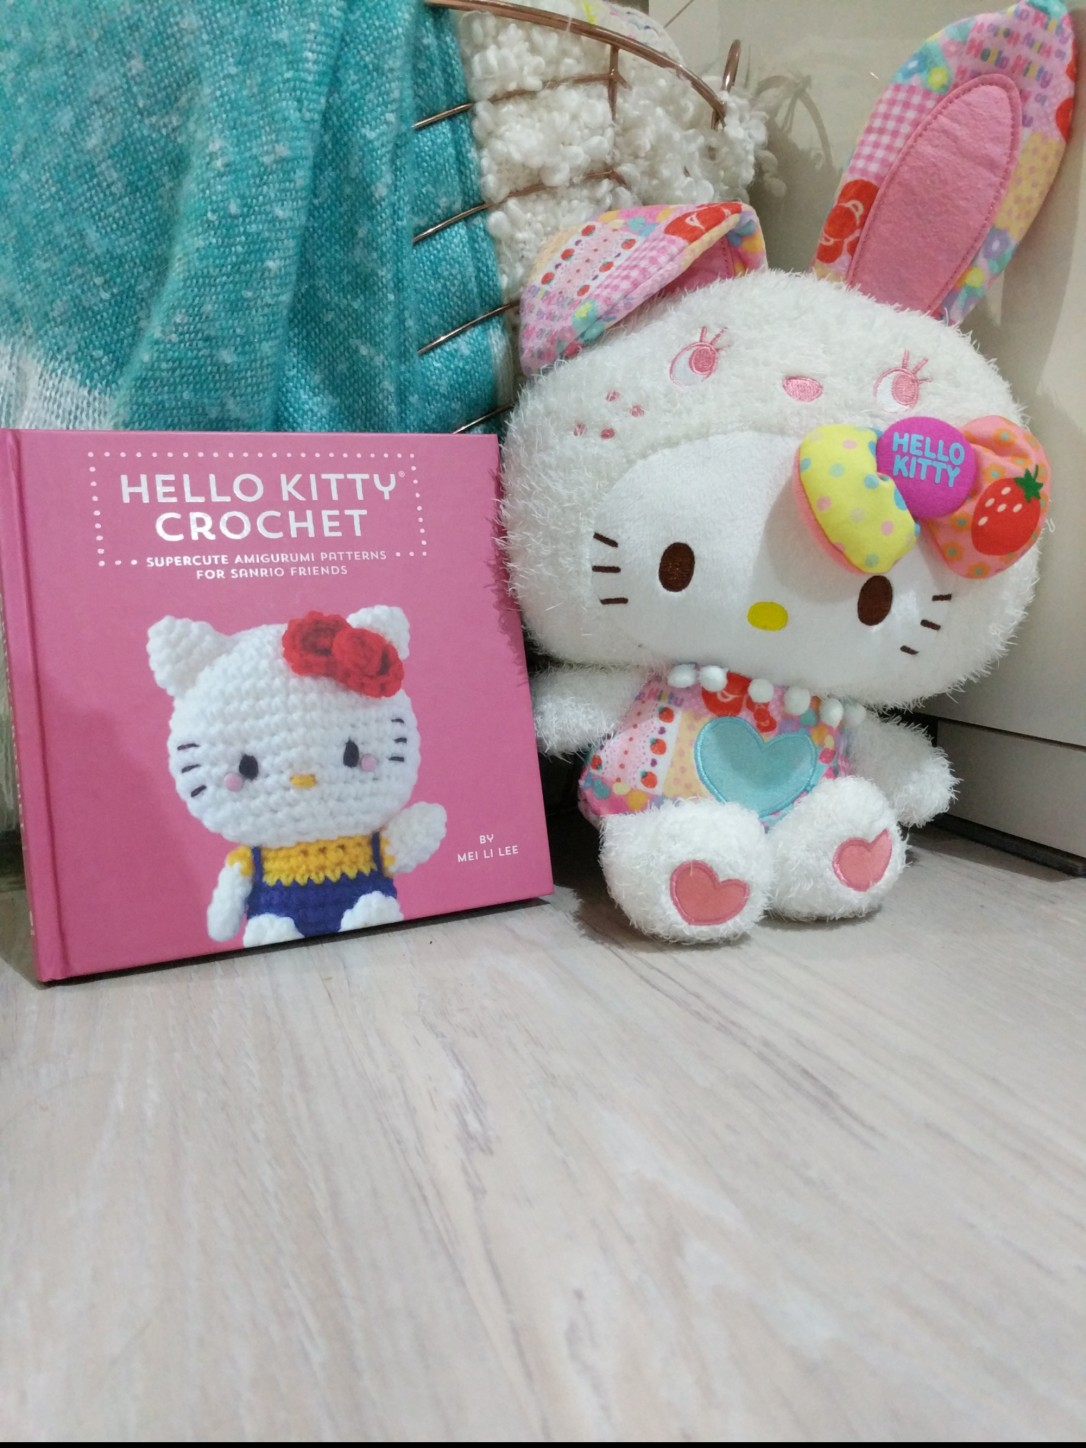 Hello Kitty Crochet, Mei Li Lee